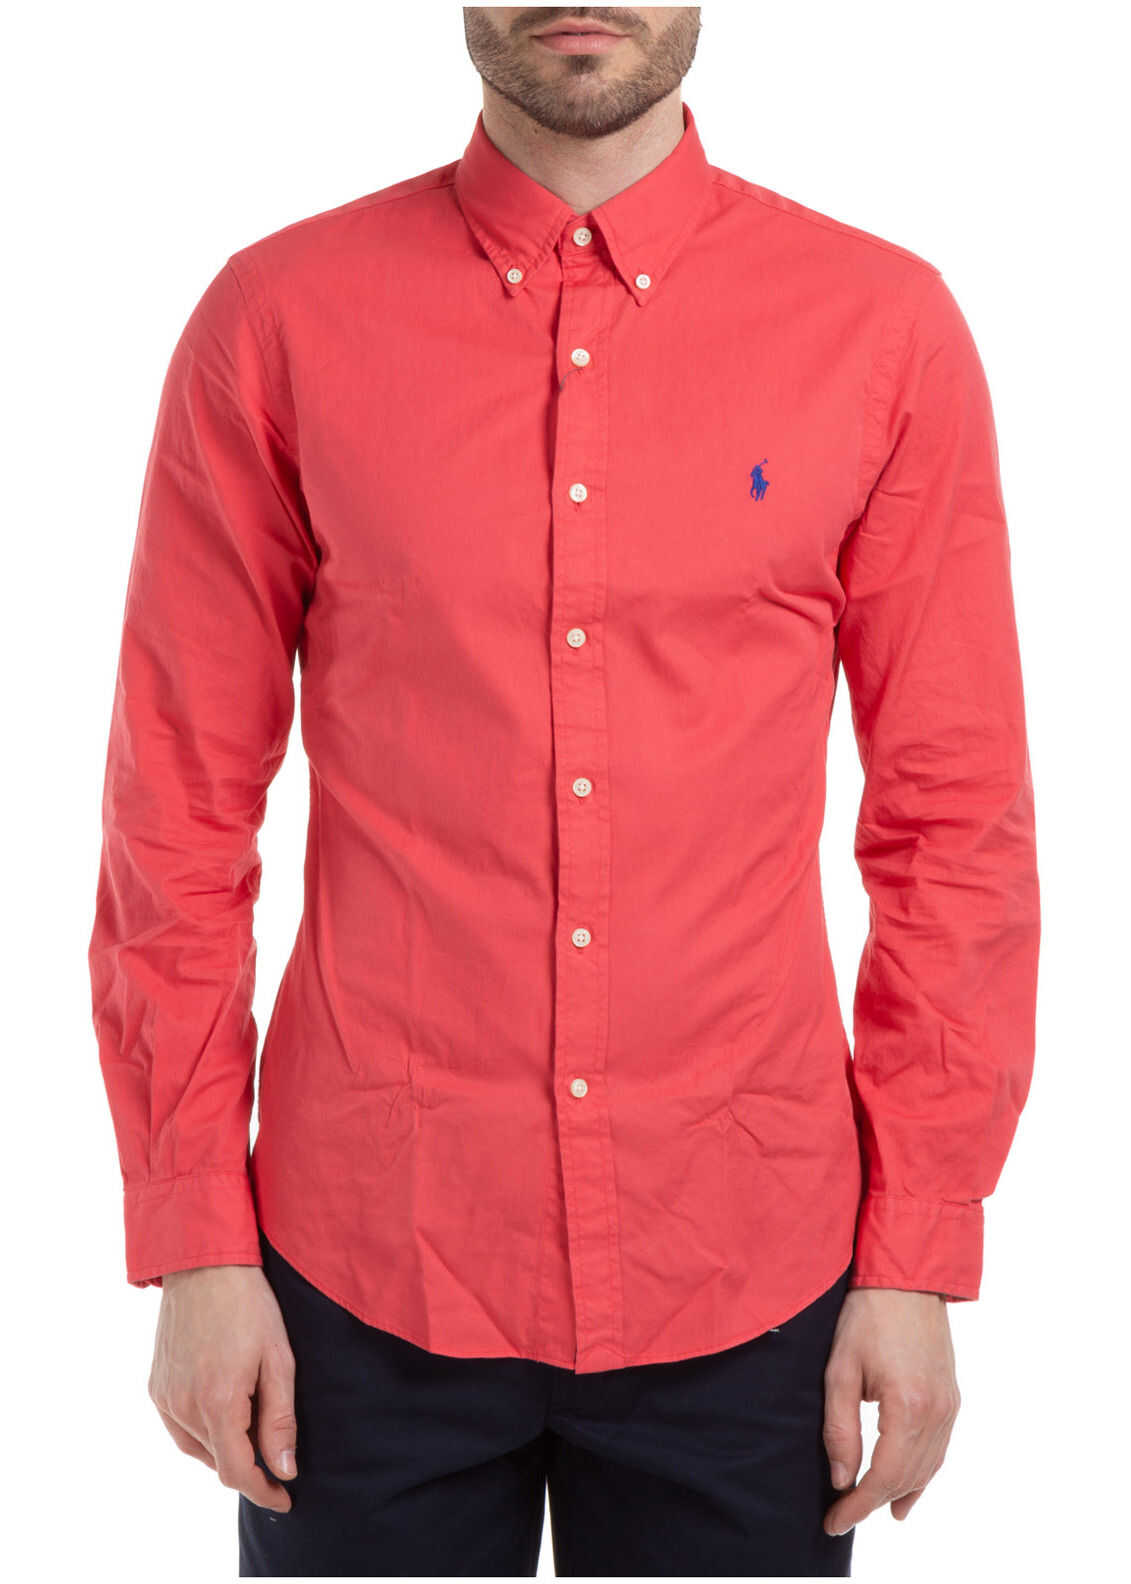 Ralph Lauren Dress Shirt* Red